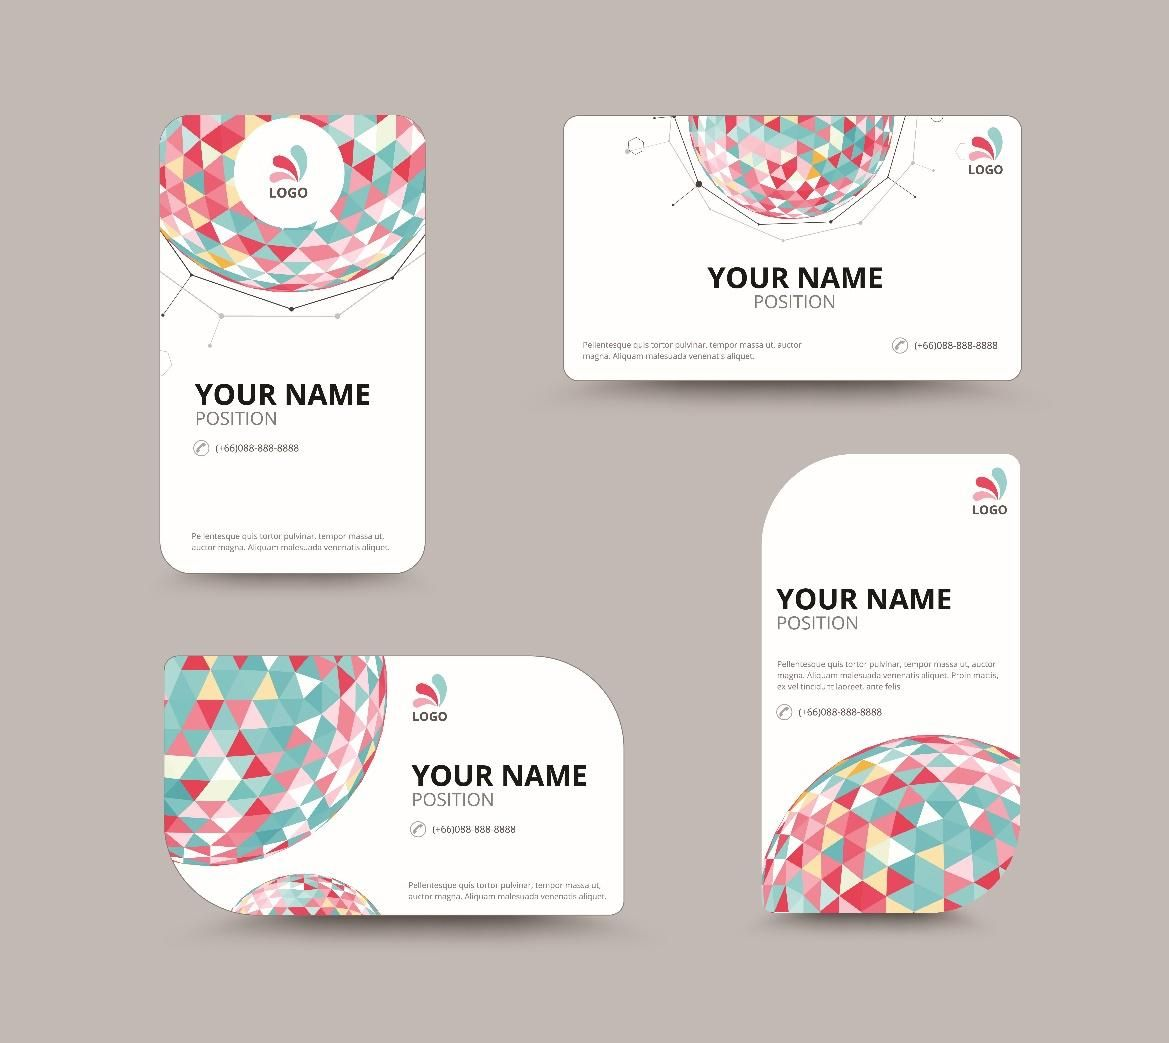 Tips when designing your business card the freelancer club tips when designing your business card the freelancer club colourmoves